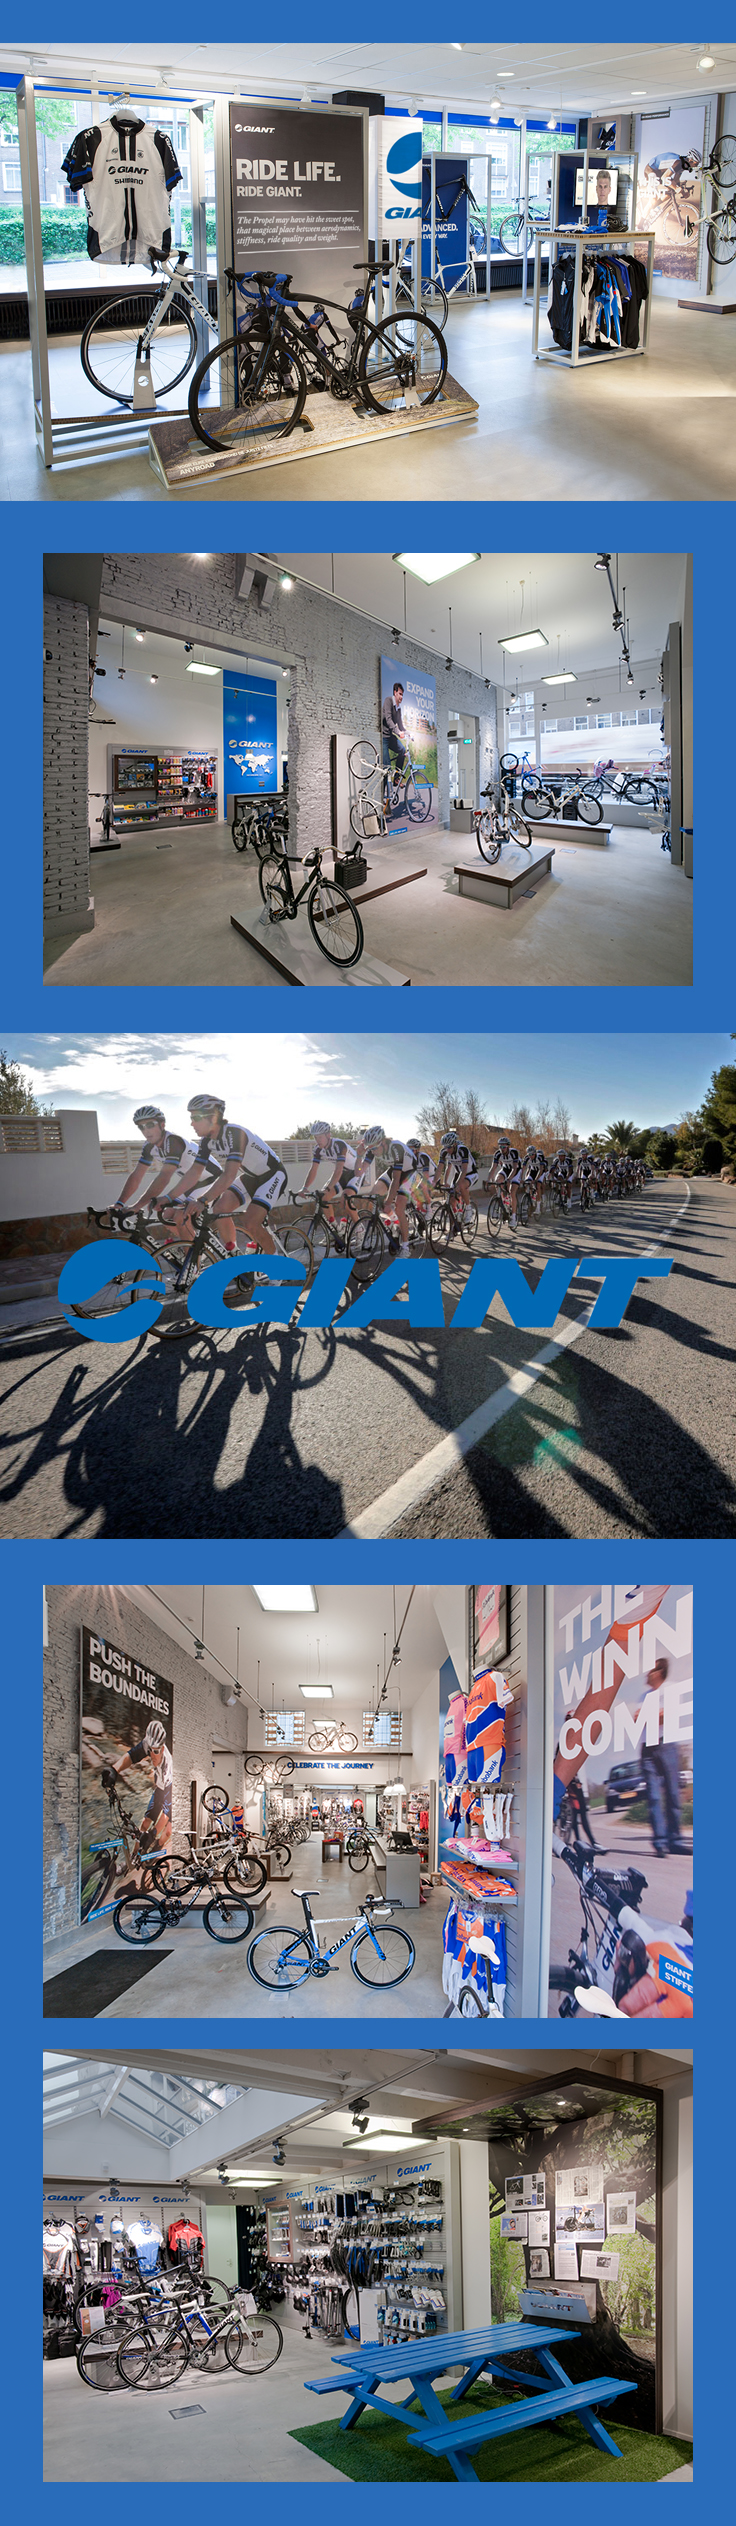 Giant bicycle store - Portfolio of Twan Minten #Retaildesign #Branding